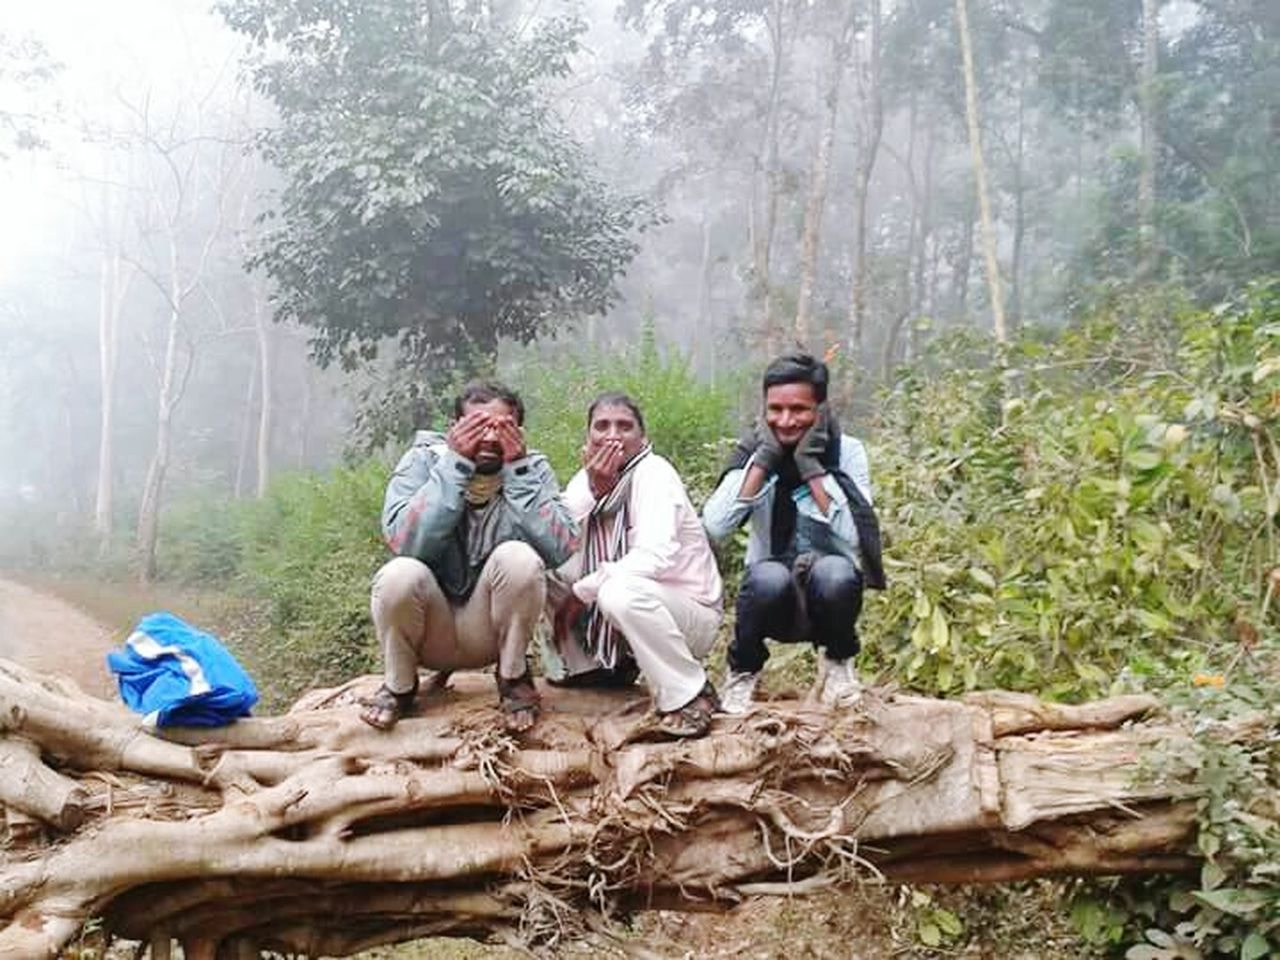 sitting, mature adult, mature men, forest, tree, men, day, togetherness, mature women, outdoors, father, nature, adult, women, mountain, smiling, full length, young adult, people, adults only